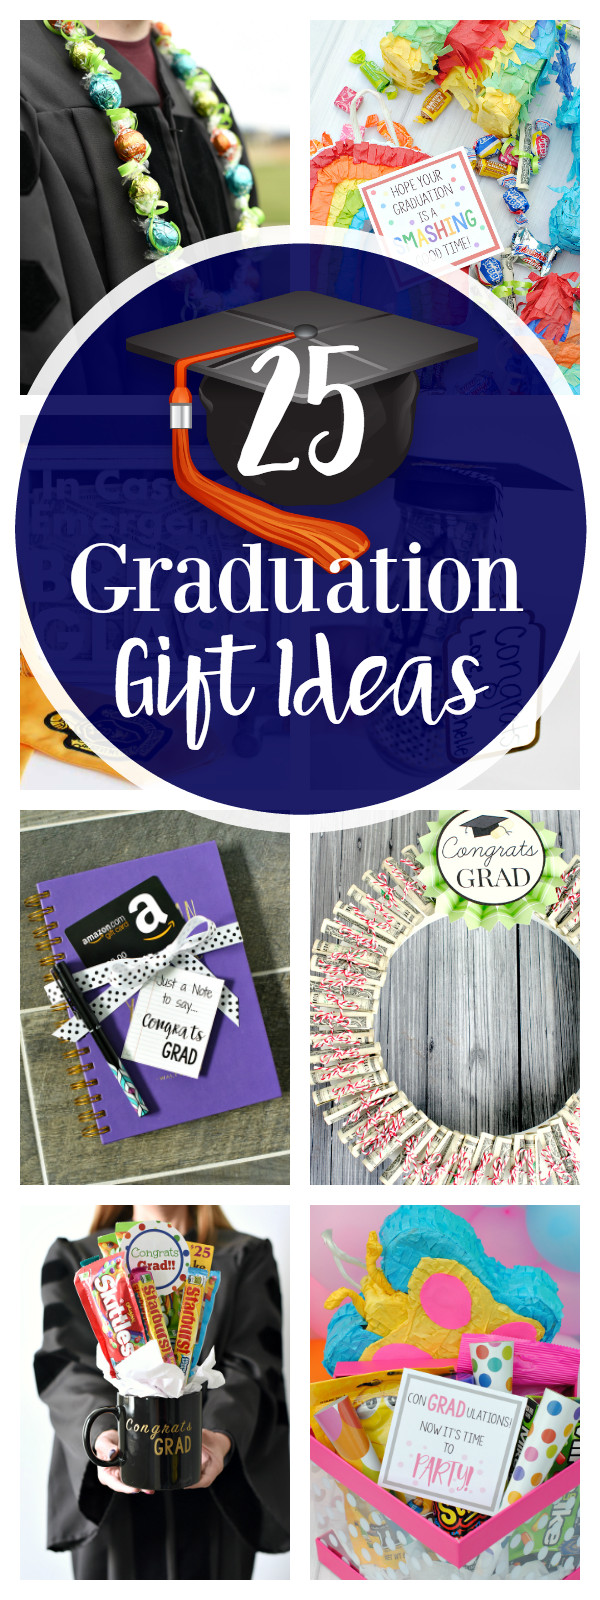 Best ideas about Gift Ideas With Pictures . Save or Pin 25 Fun & Unique Graduation Gifts – Fun Squared Now.